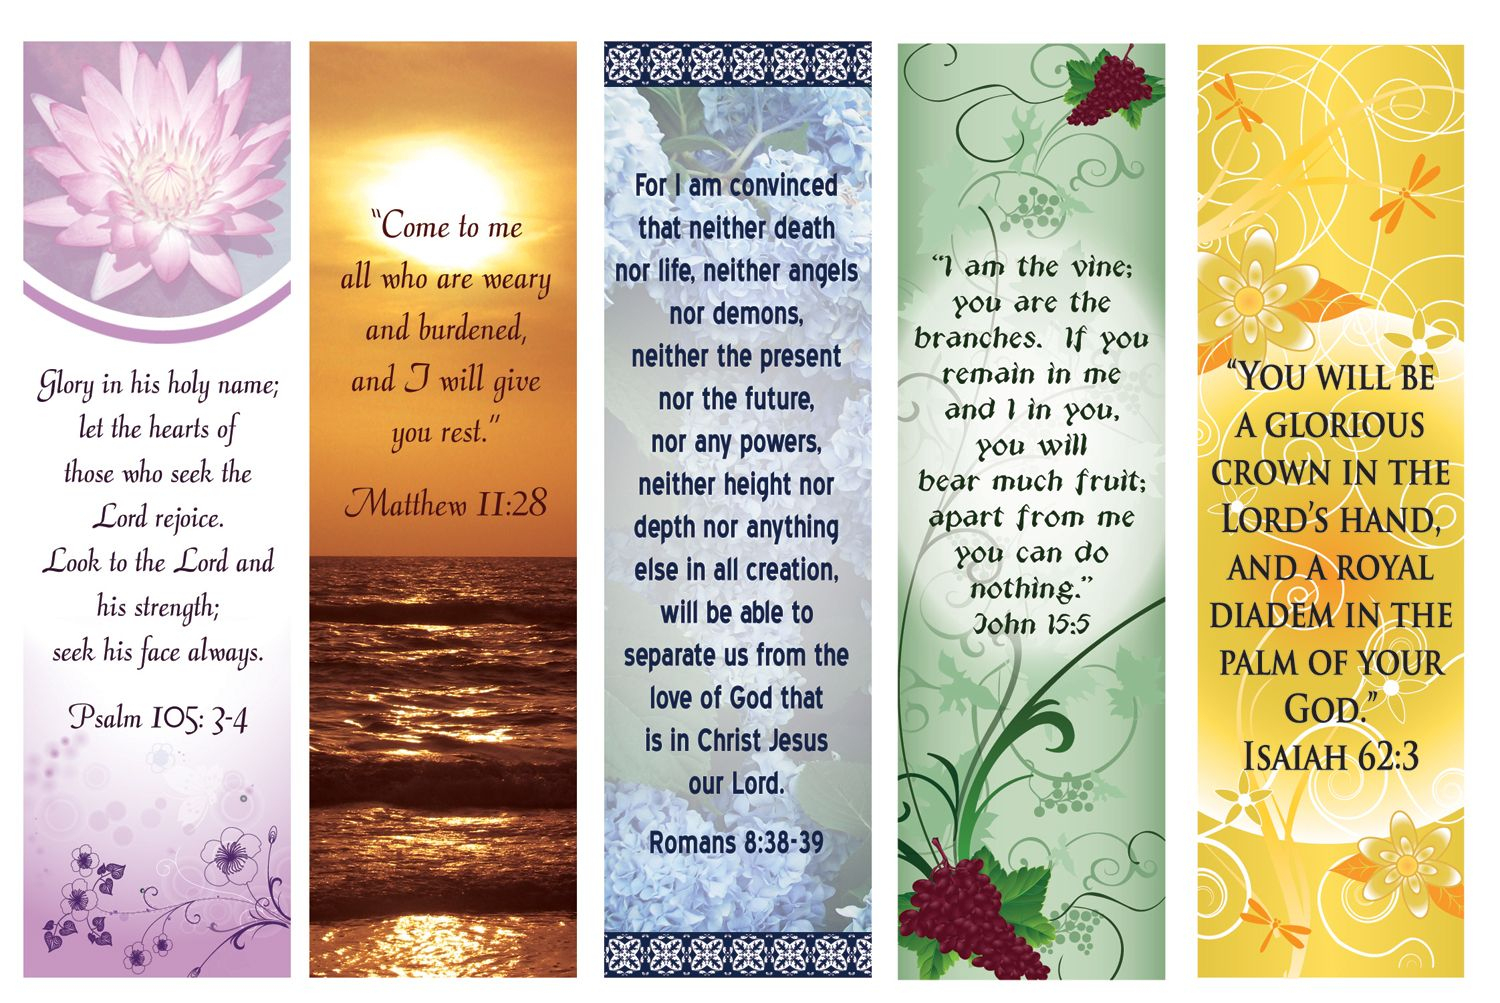 Free Printable Bookmarks With Bible Verses | Bookmarks | Pinterest - Free Printable Religious Easter Bookmarks